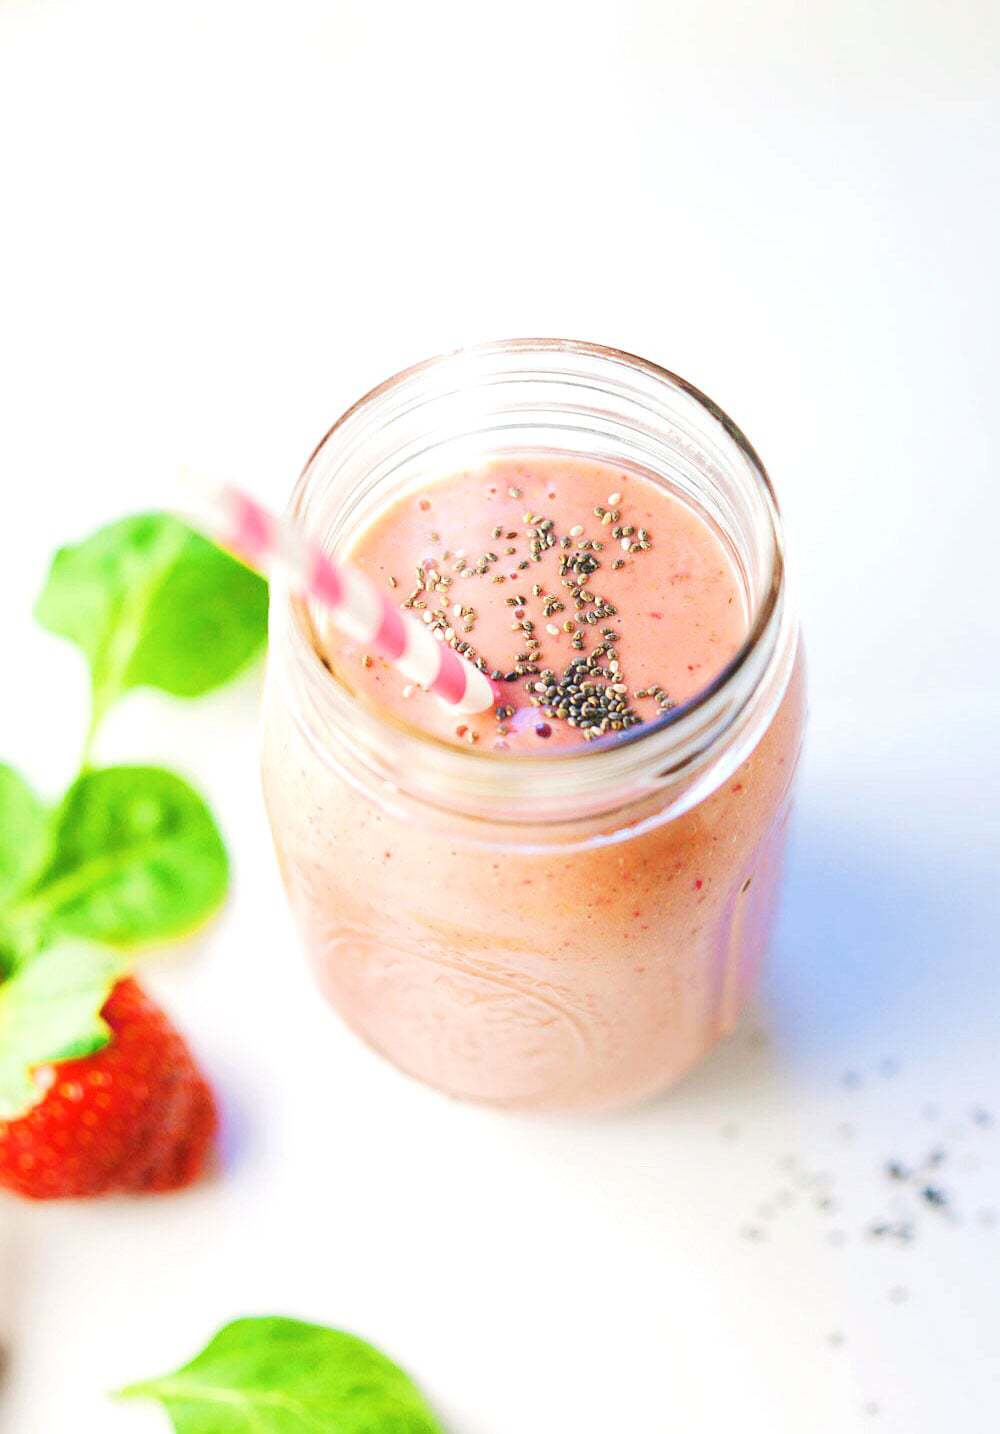 Strawberry Chia & Spinach Sunrise Smoothie - Nutrient-filled, colorful ingredients packed into a flavorful smoothie to boost energy! My FAVORITE smoothie.